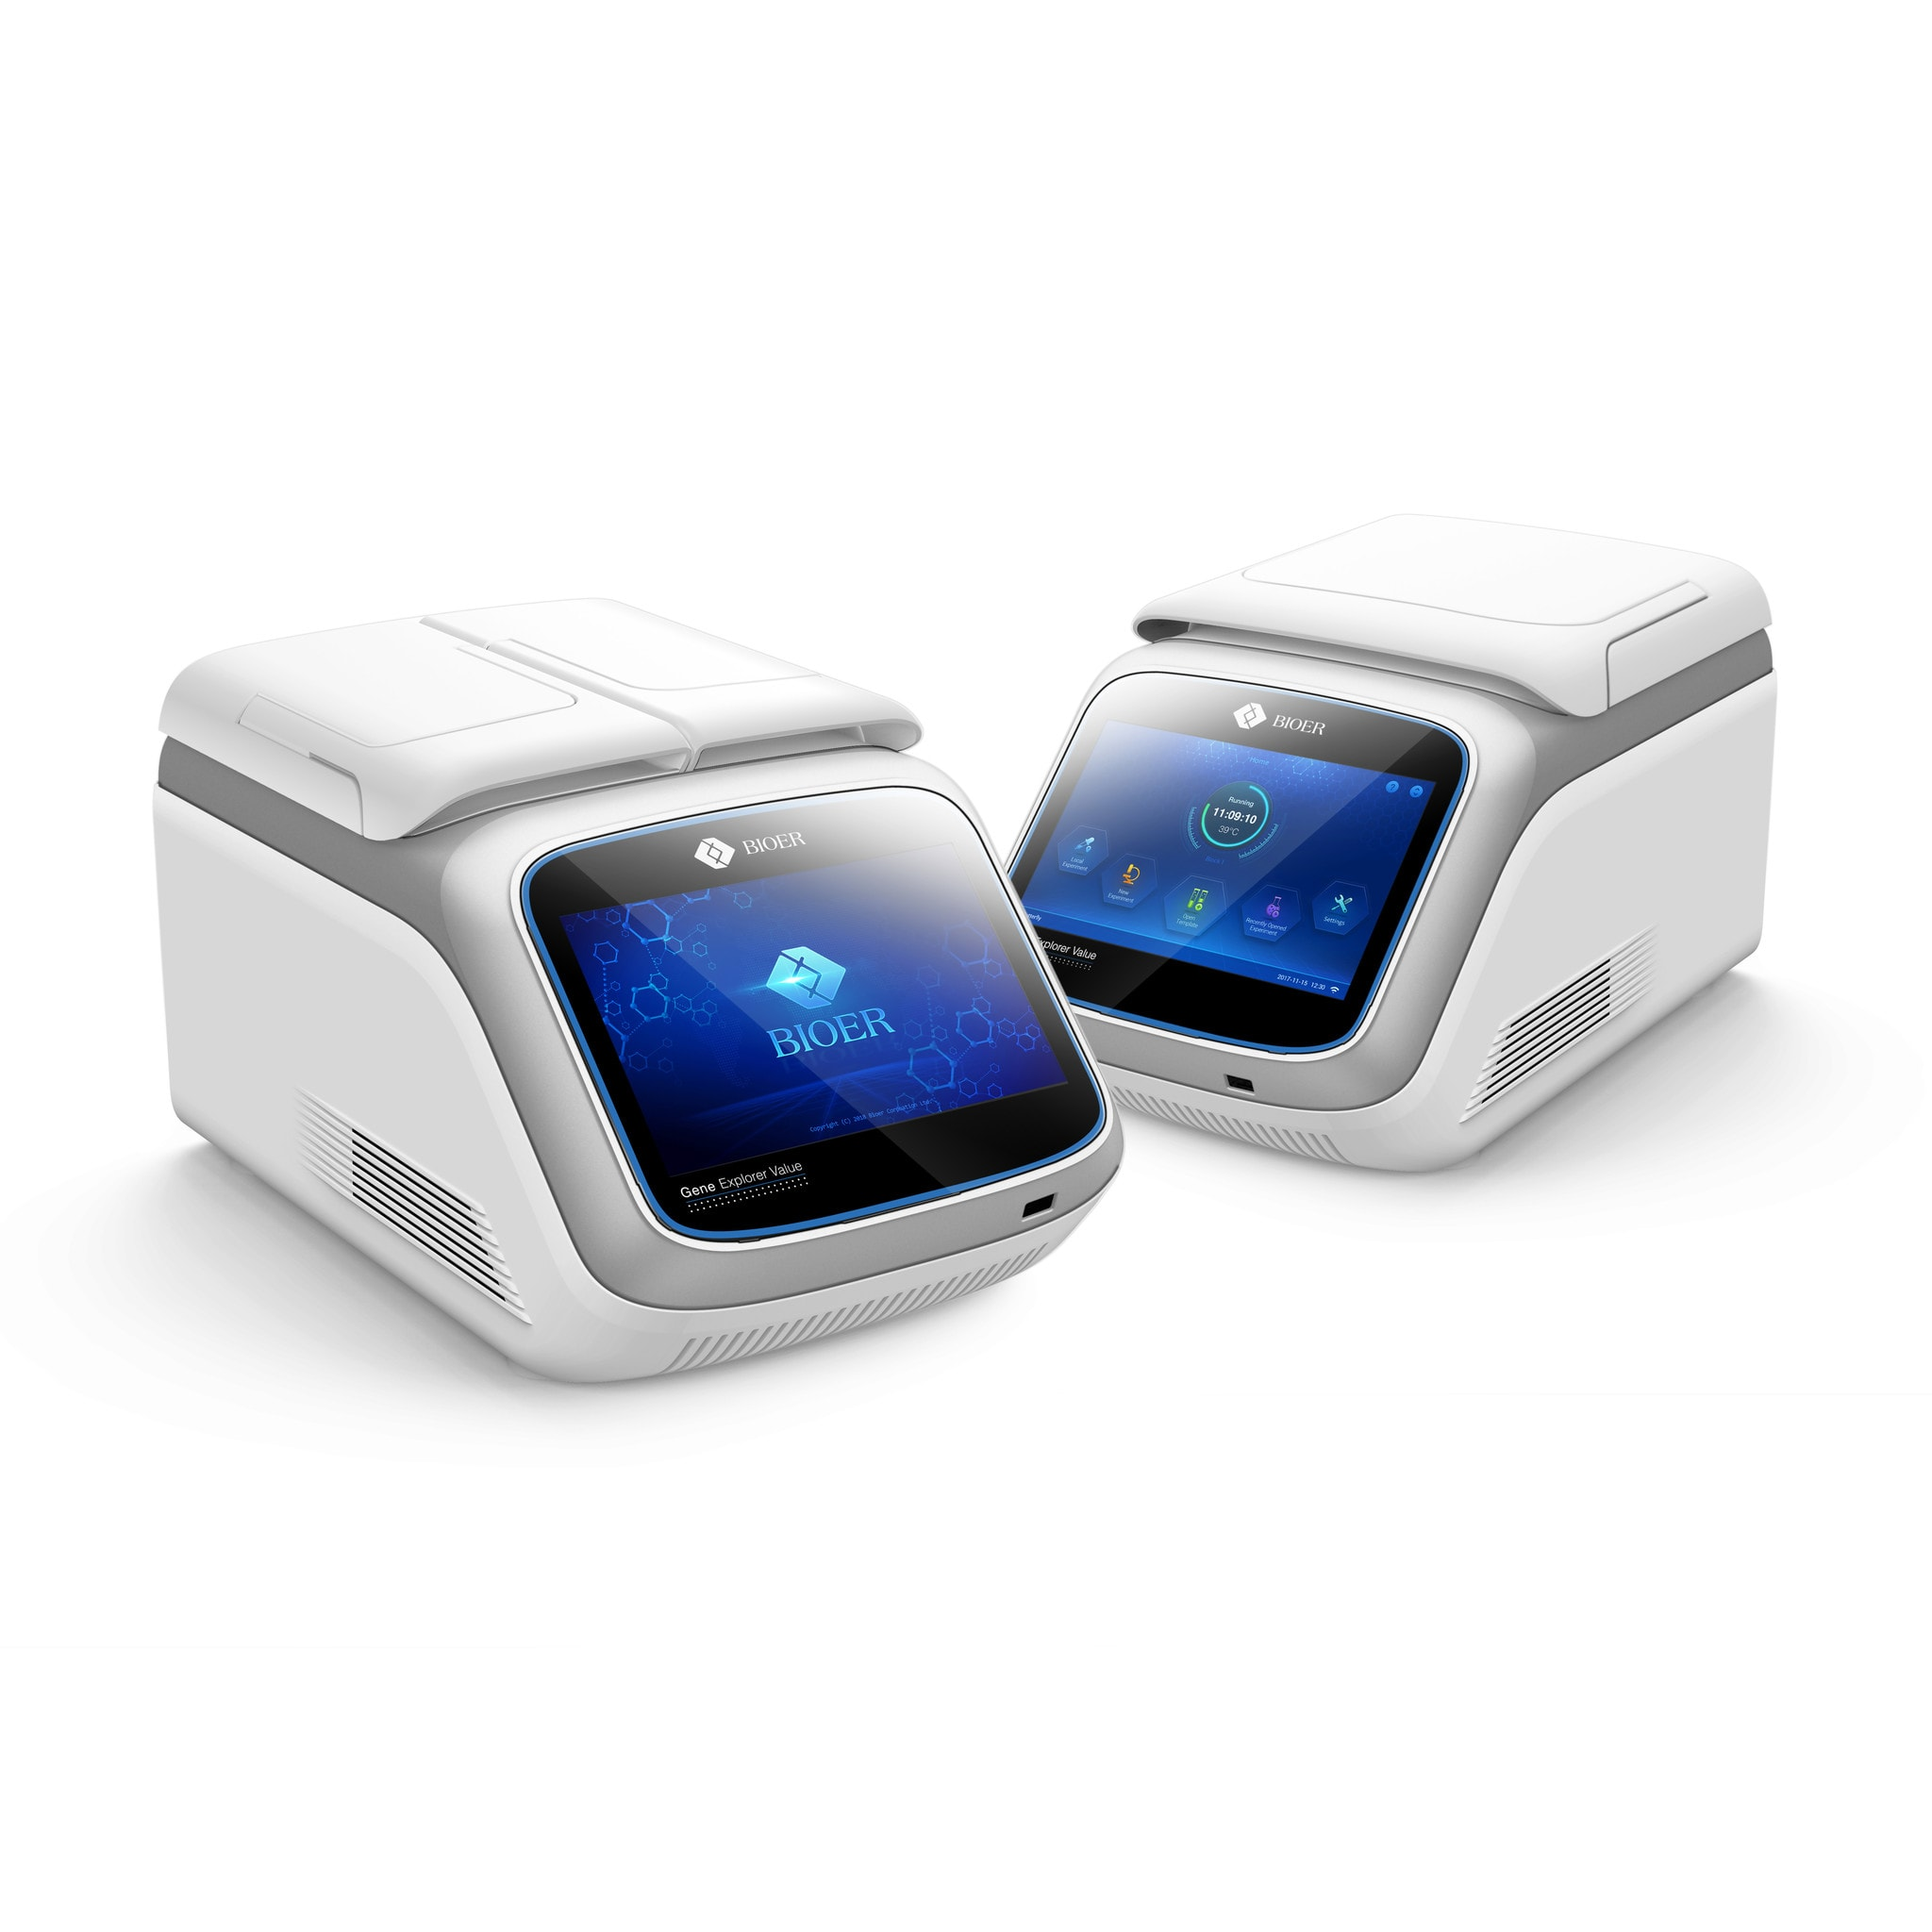 BIOER leading company in qPCR, PCR technology